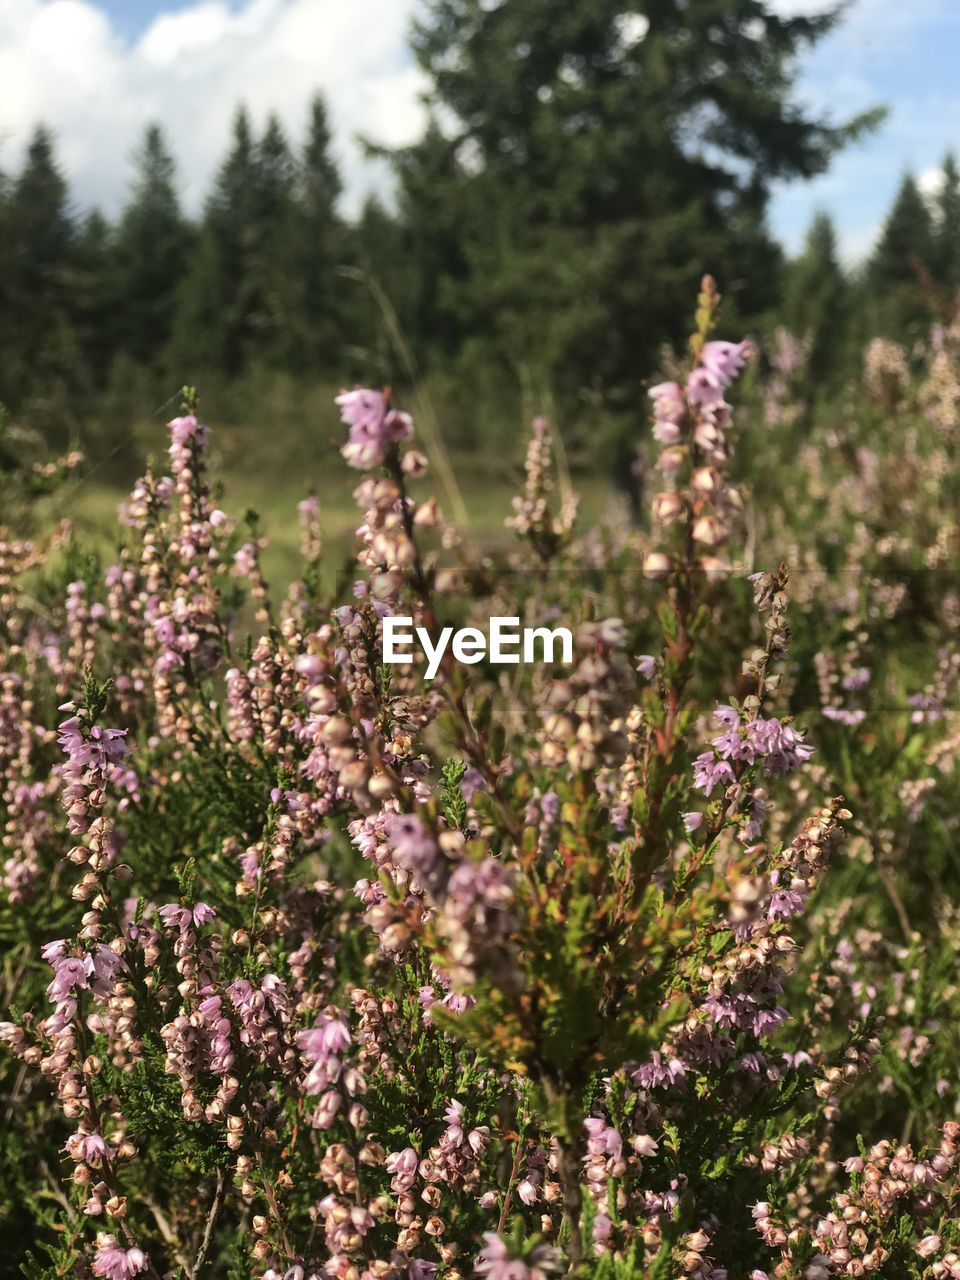 flower, plant, flowering plant, growth, beauty in nature, freshness, vulnerability, fragility, nature, close-up, no people, land, day, field, purple, lavender, focus on foreground, tranquility, selective focus, sunlight, outdoors, flower head